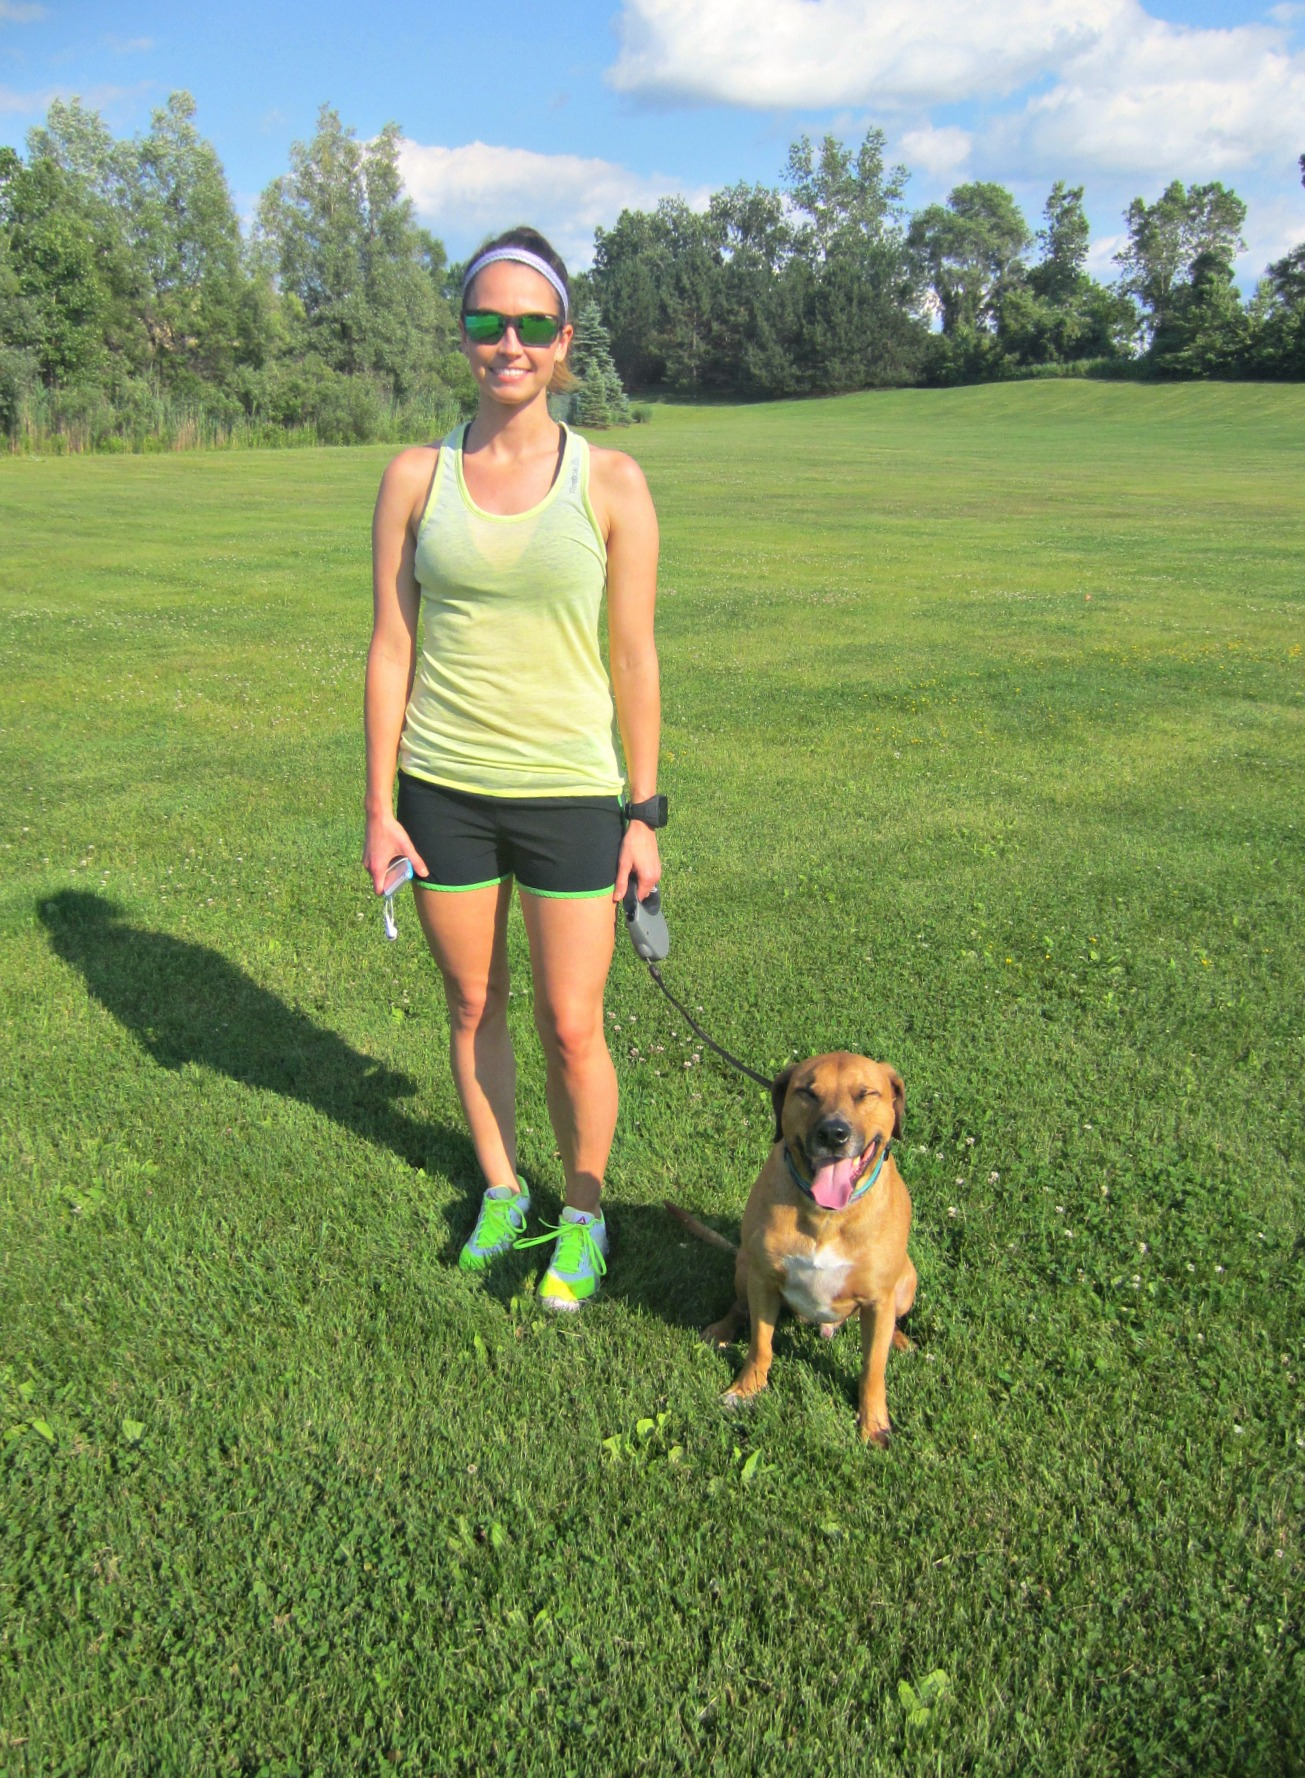 Heather and Roadie ready for a run in sunglasses